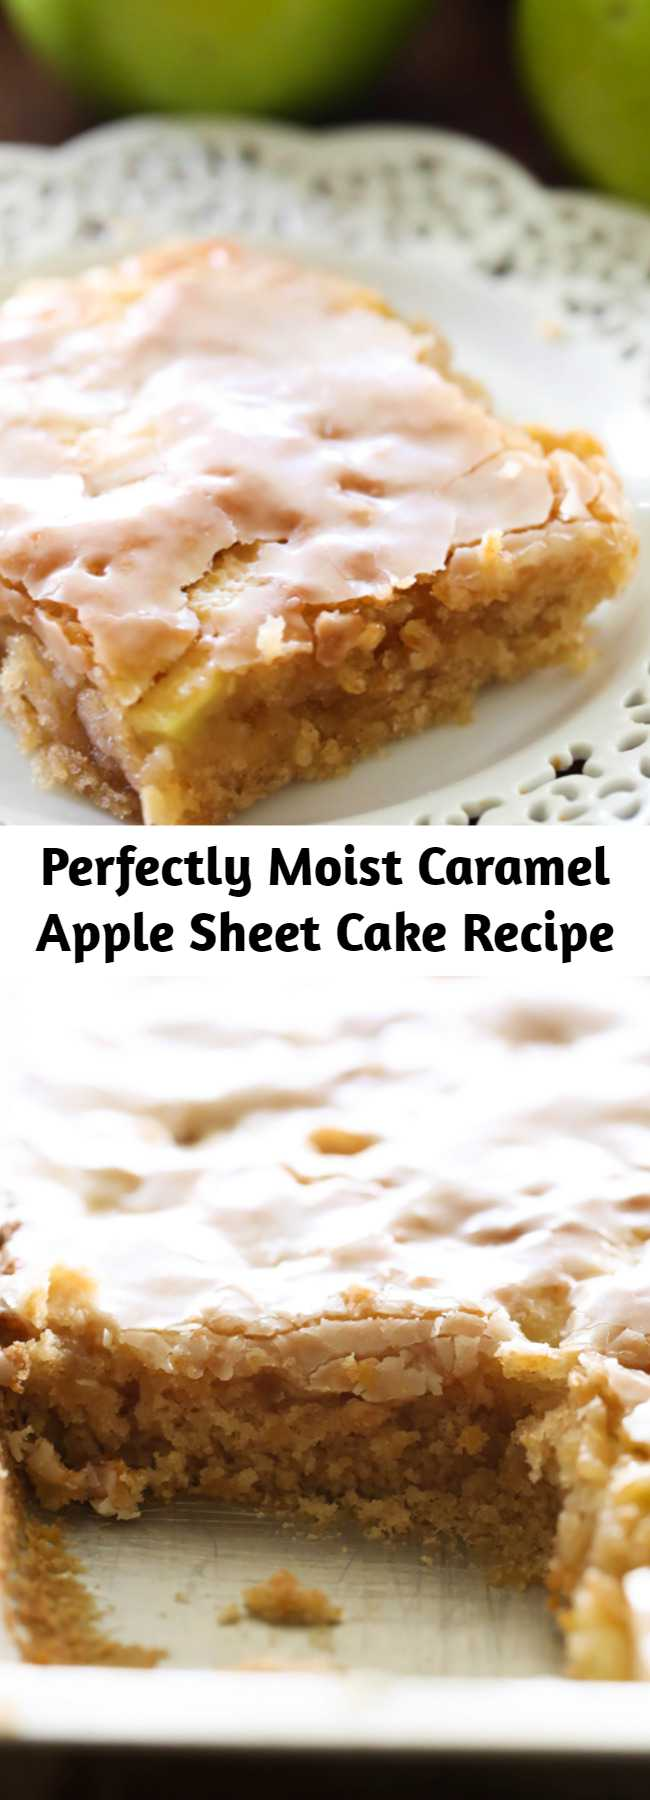 Perfectly Moist Caramel Apple Sheet Cake Recipe - This delicious apple cake is perfectly moist and has caramel frosting infused in each and every bite! It is heavenly!